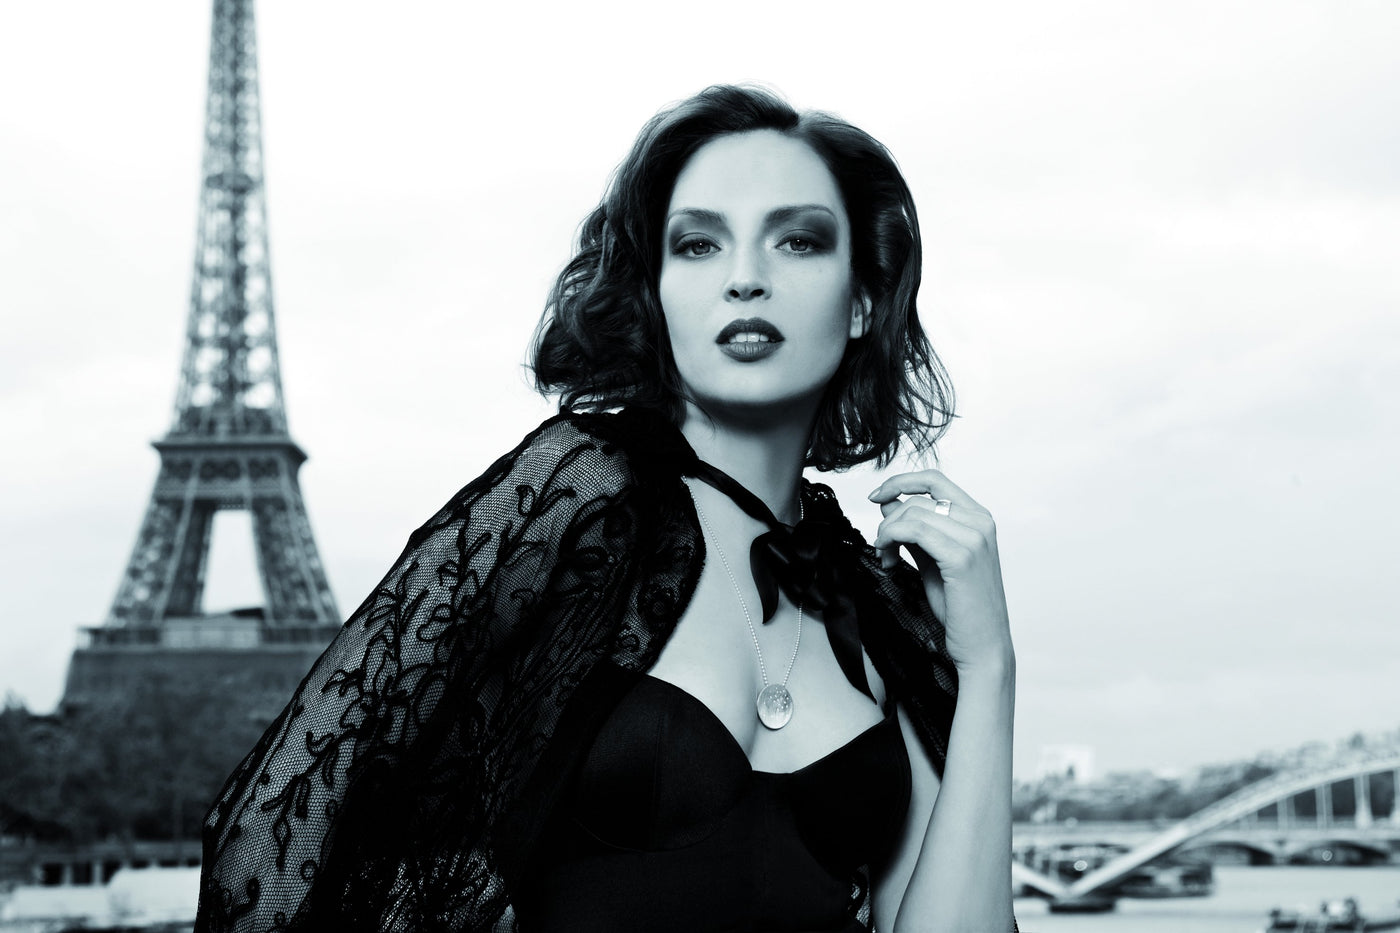 Woman wearing necklace with Eiffel Tower in background